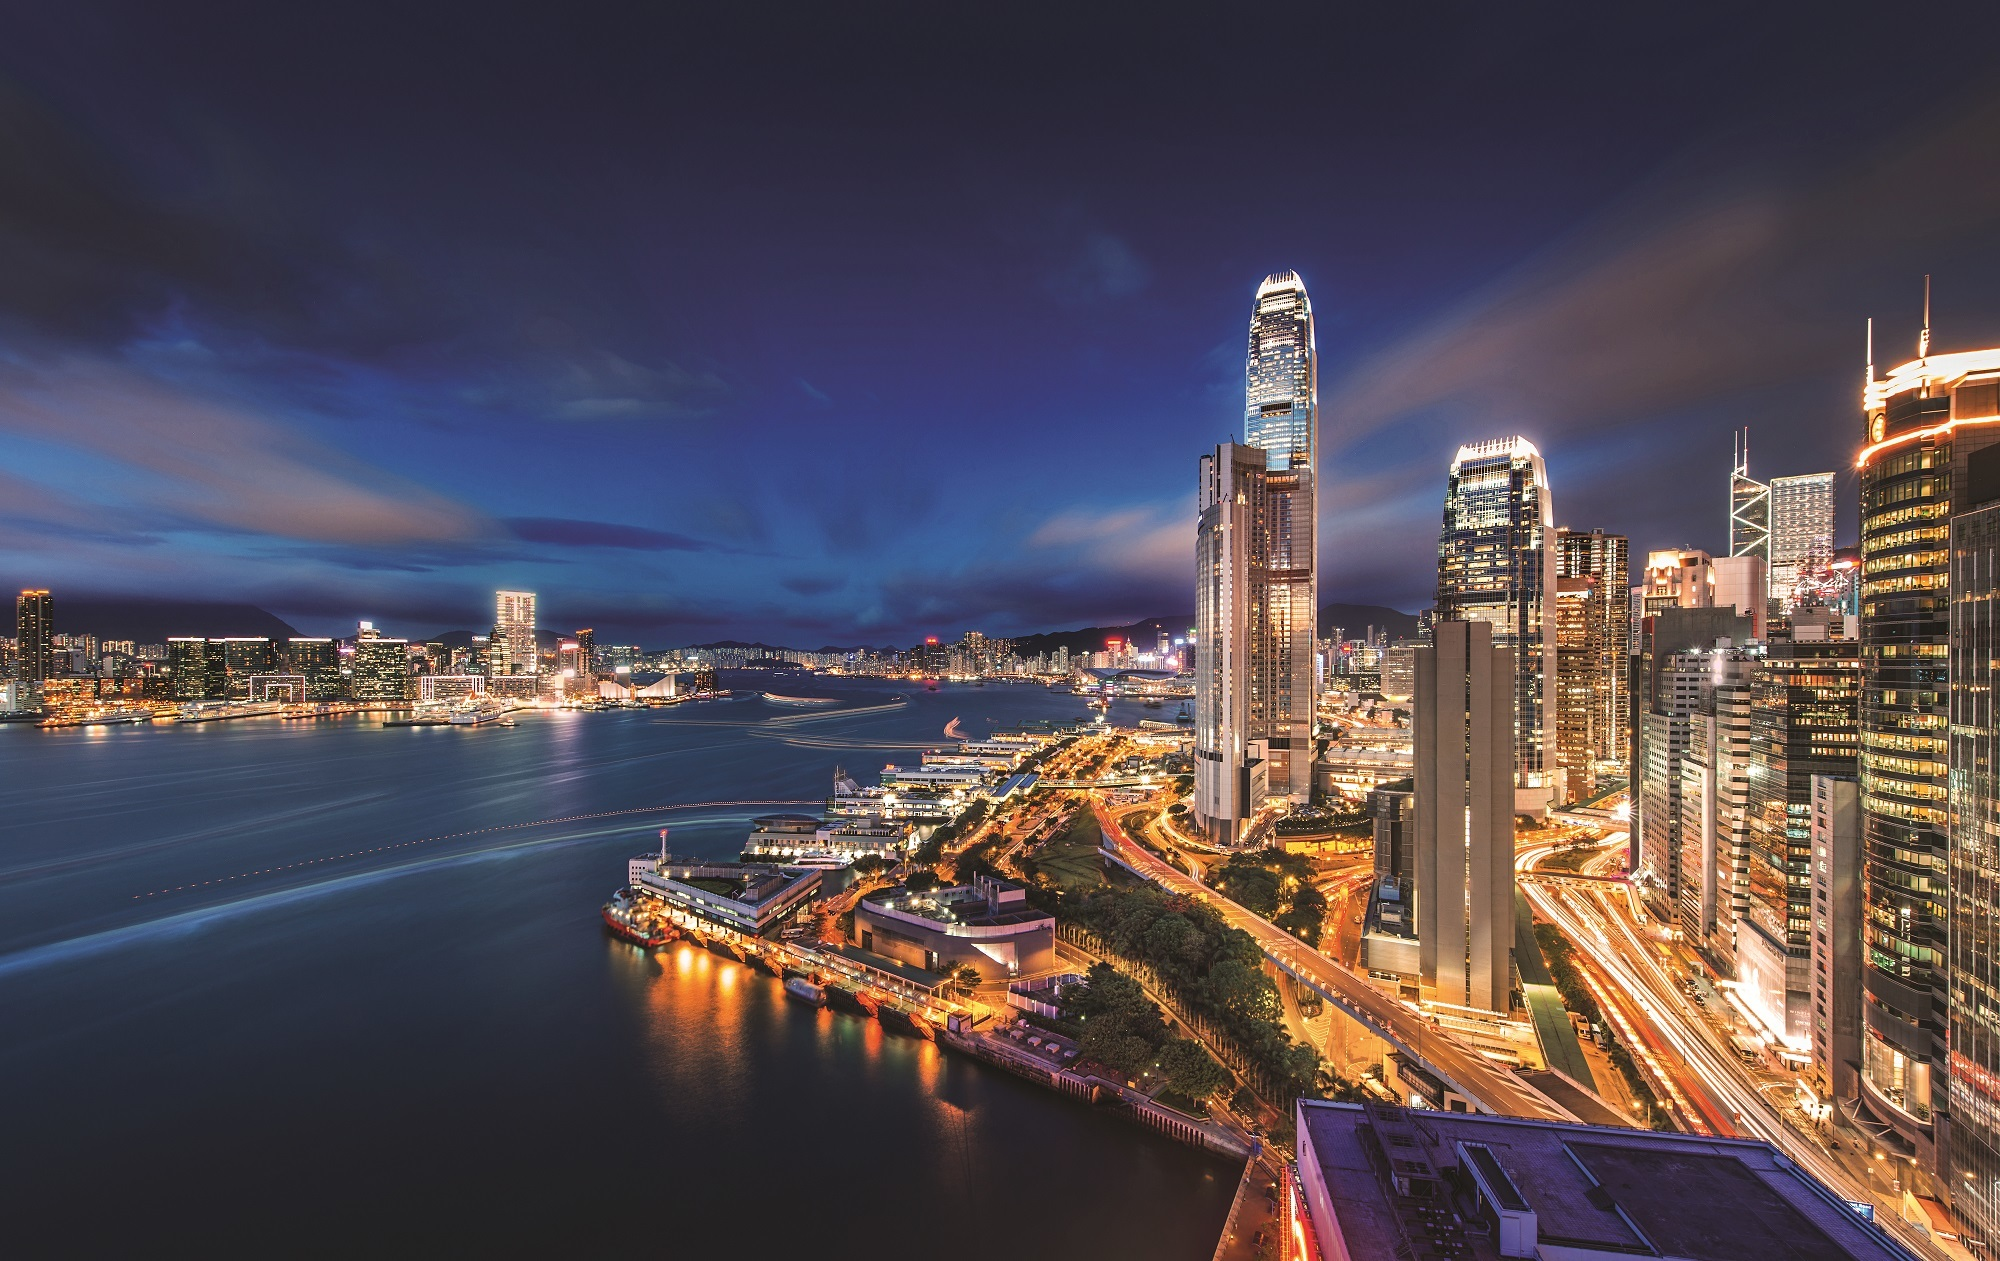 Win an amazing trip for two to Hong Kong